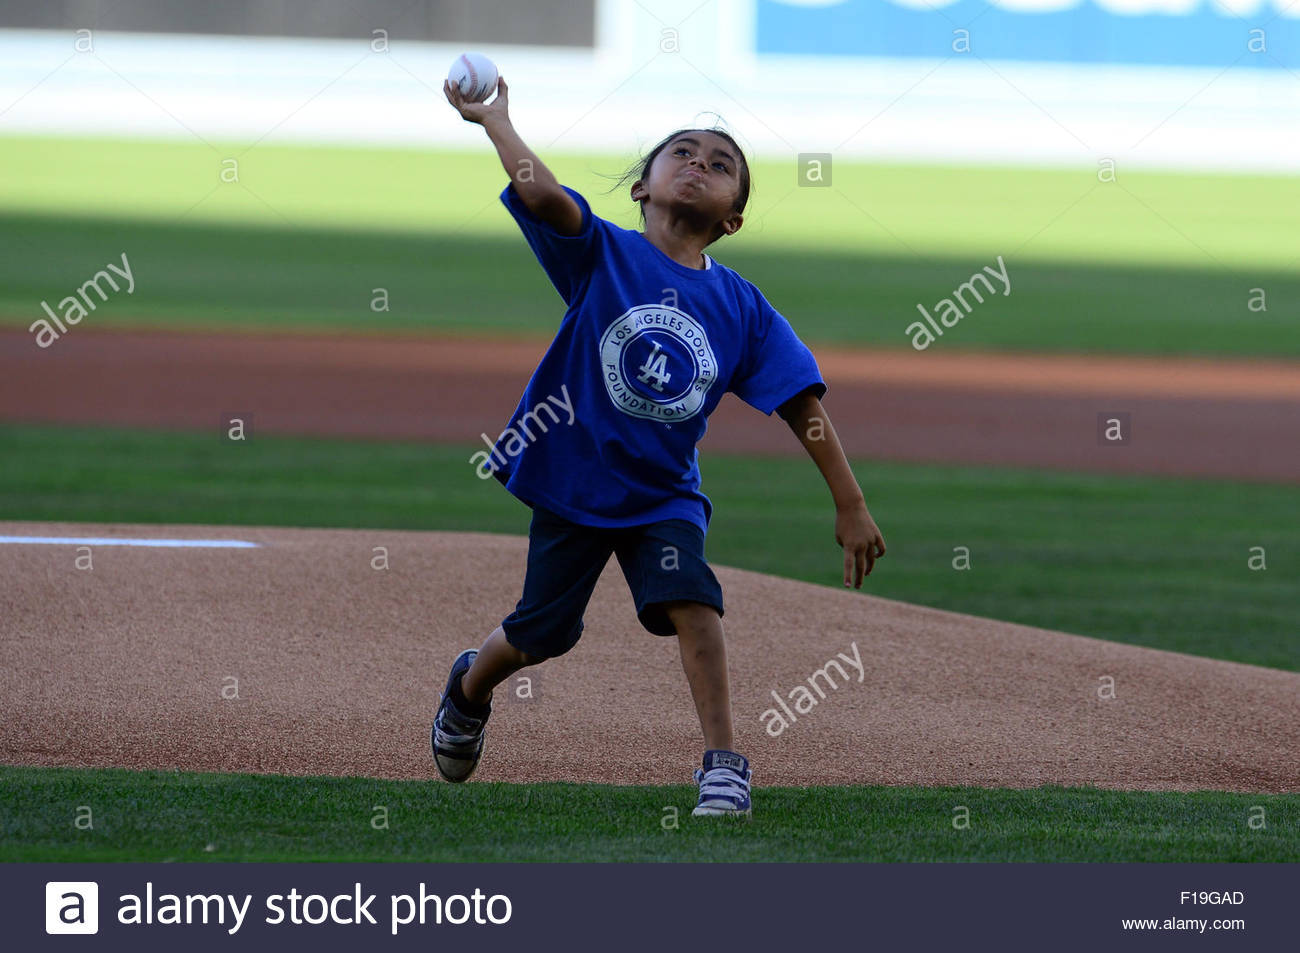 Los Angeles, California, USA. 30th Aug, 2015. Seven year-old Dainel Gutierrez of Los Angeles throws out the ceremonial Stock Photo